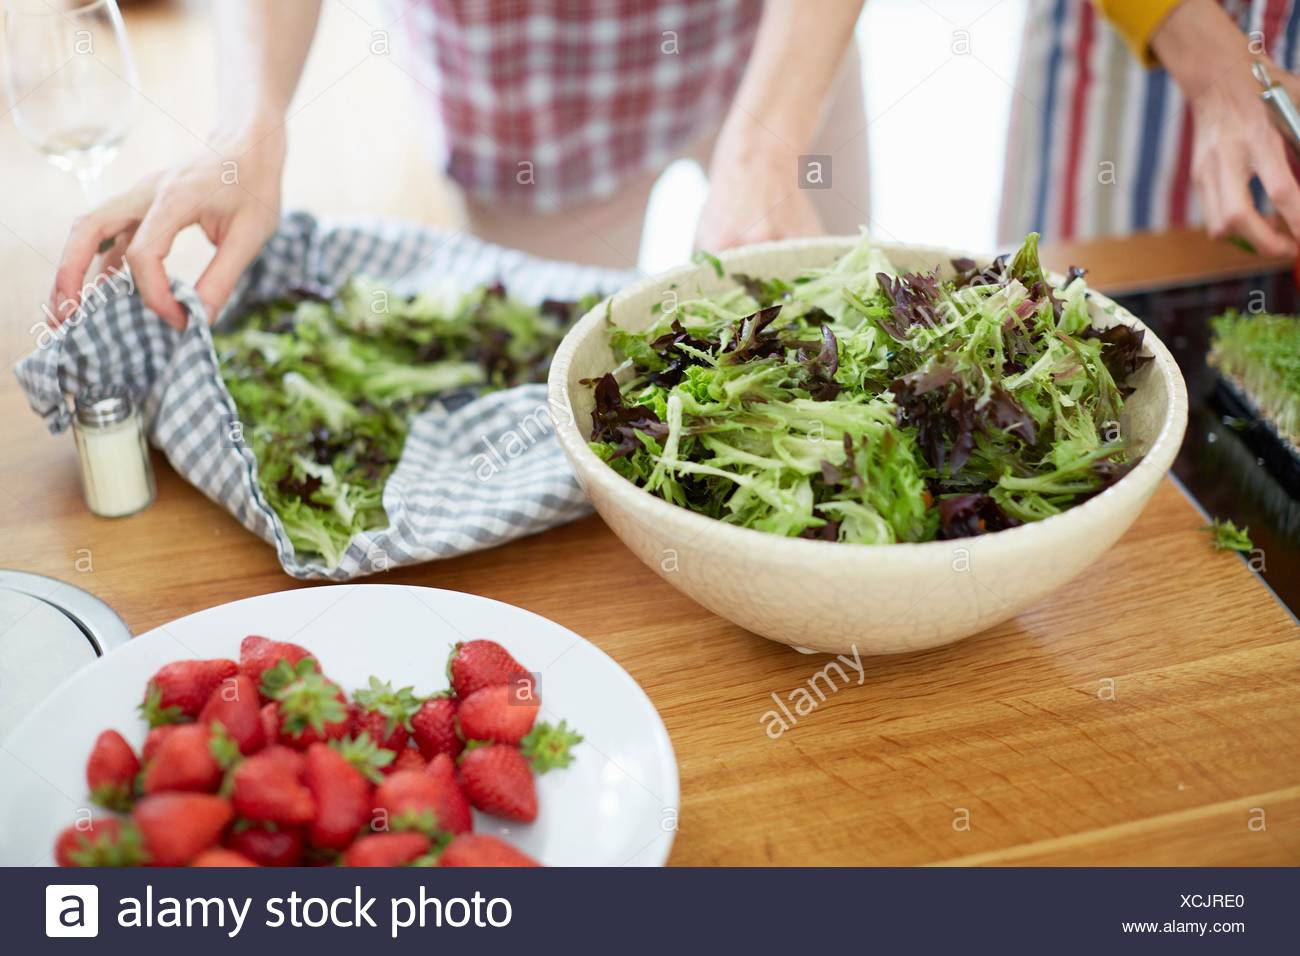 Women preparing meal in kitchen - Stock Image